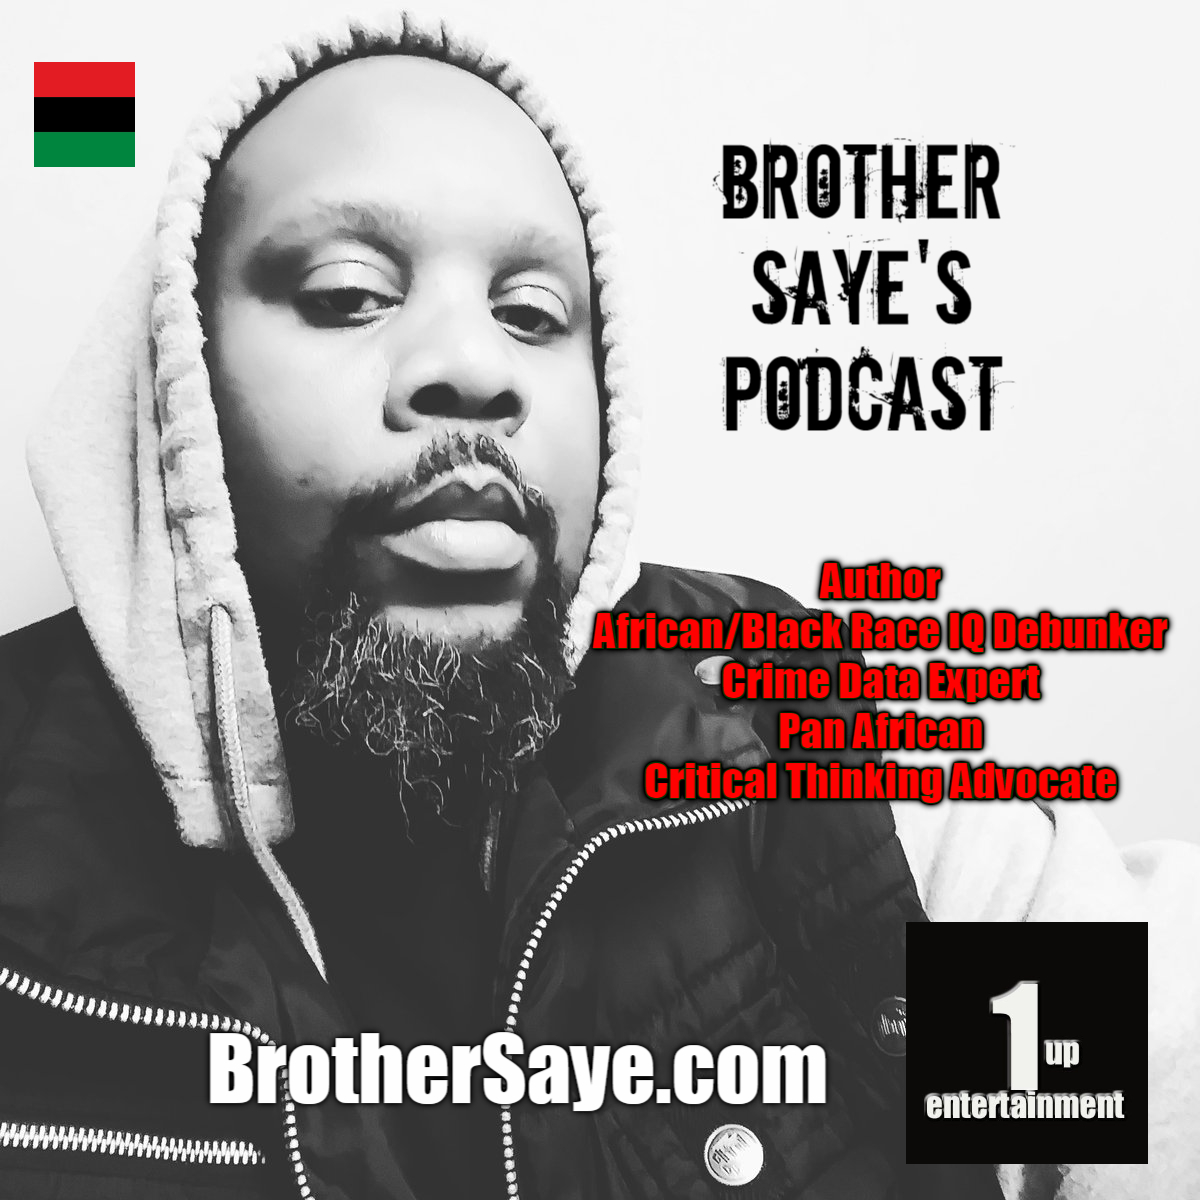 Brother Saye's Podcast